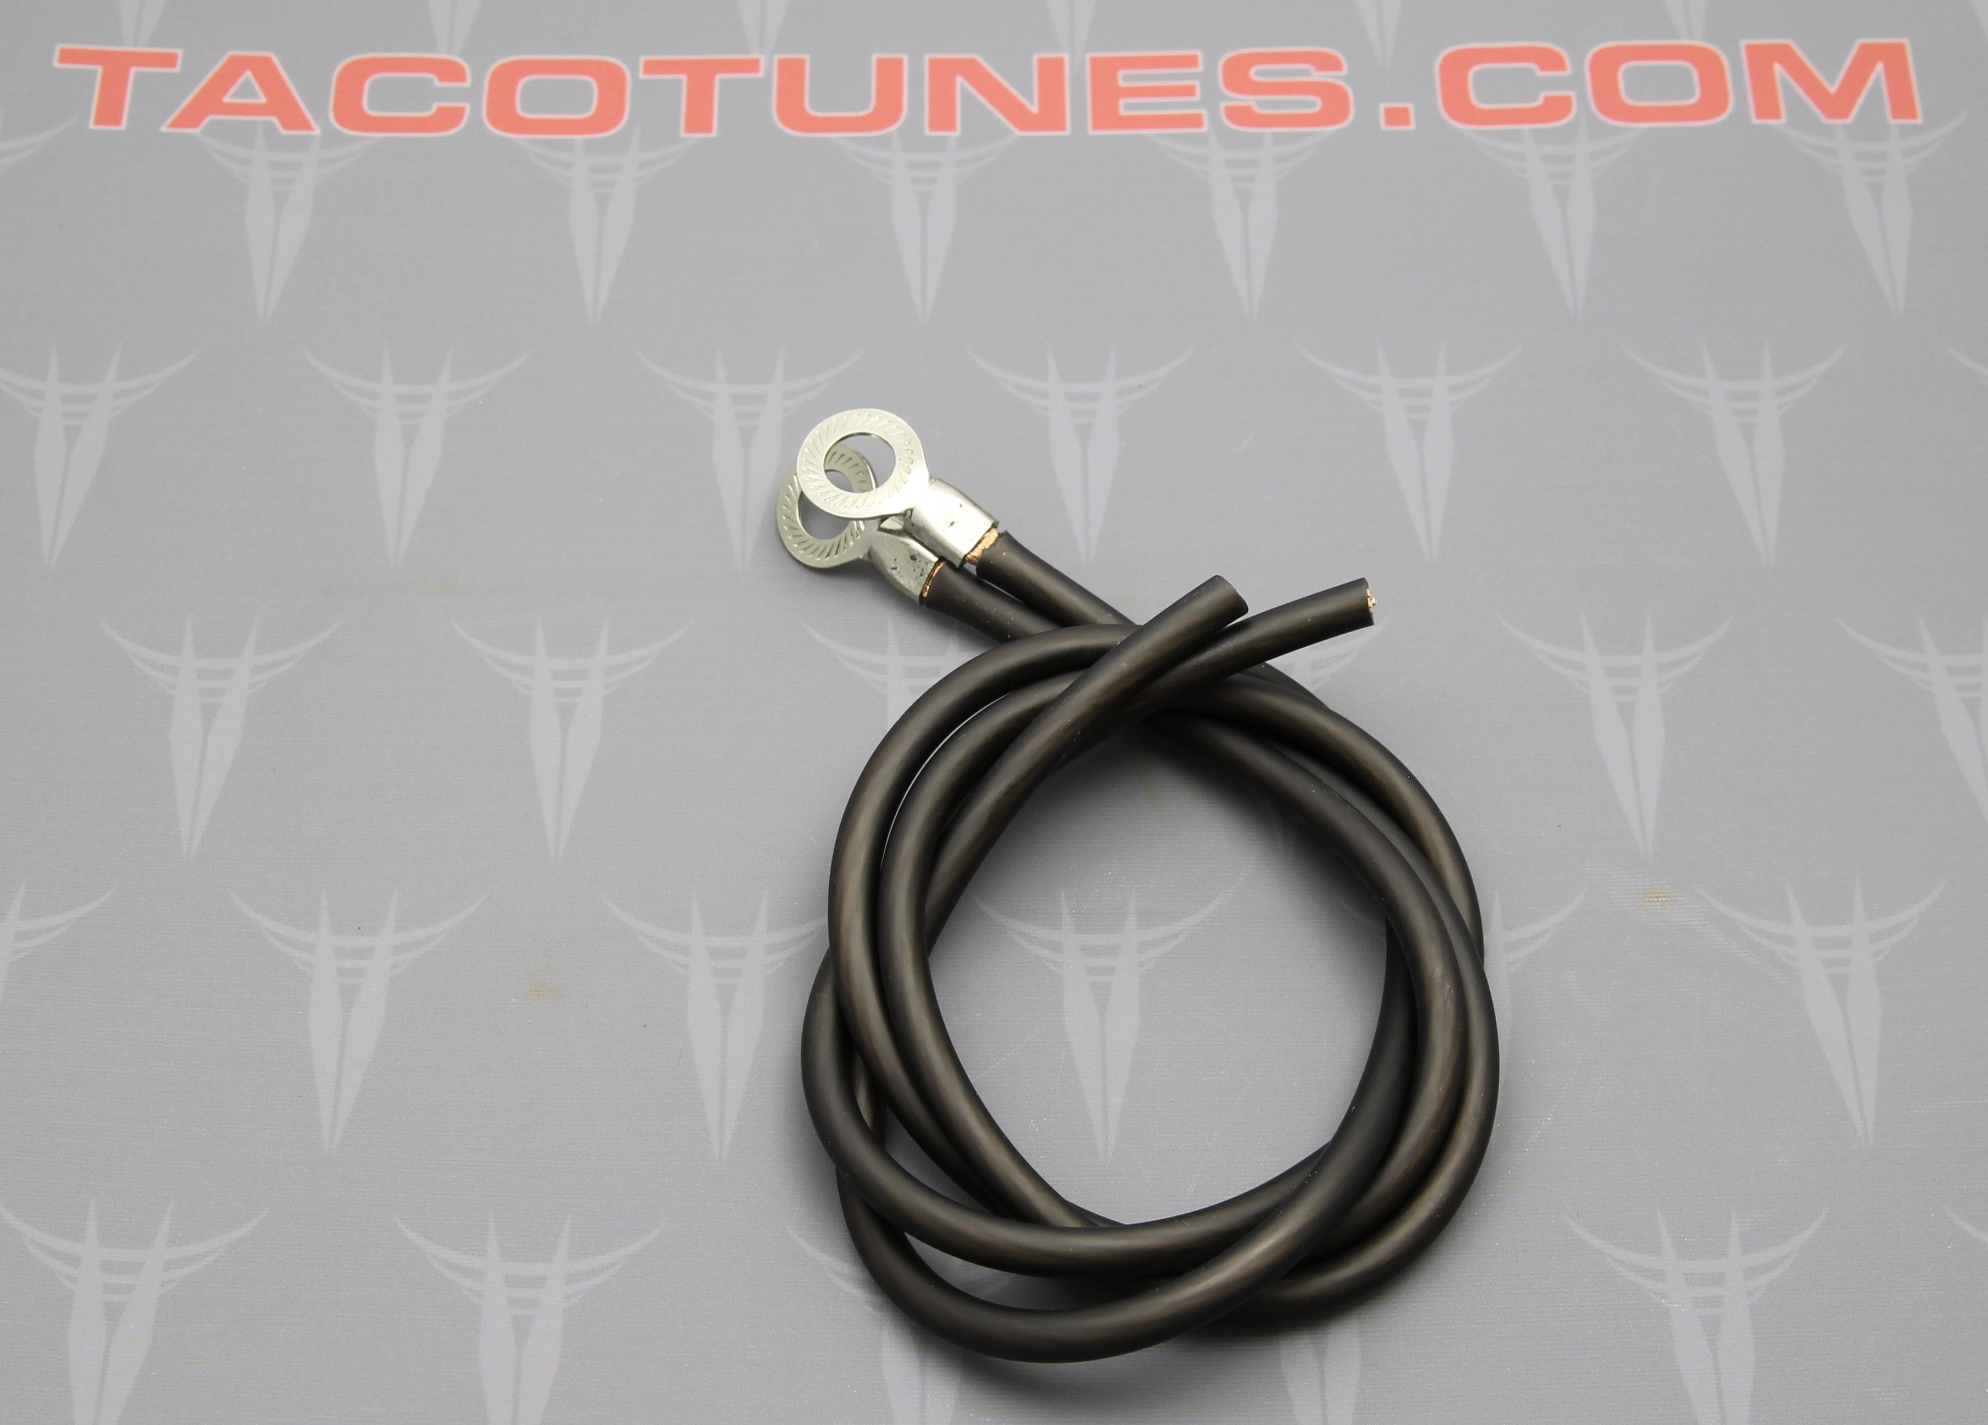 What size ground wire for 1000 watt amp choice image wiring table txd3204 txd6001 dual amplifier power installation kit taco txd3204 txd6001 dual amp installation kit ground wires greentooth Image collections